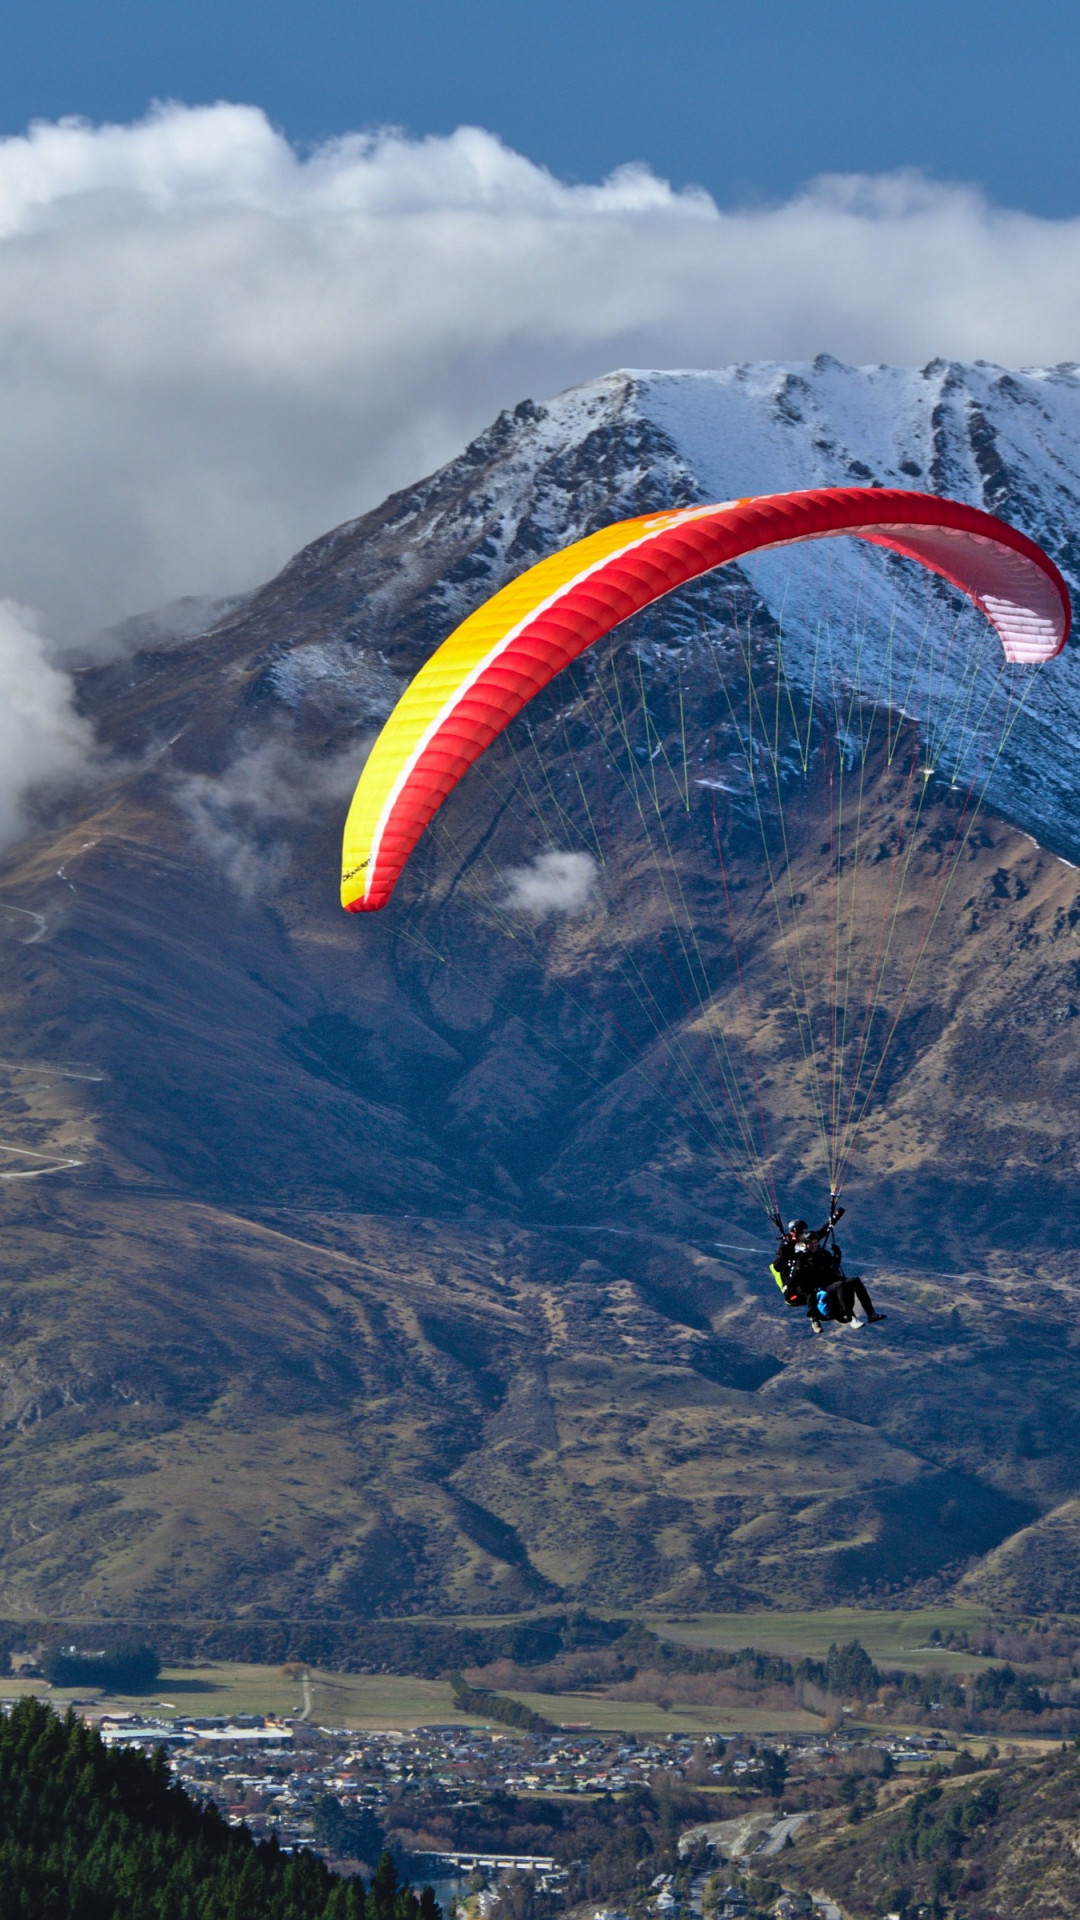 Paraglider up in the sky wallpaper 1080x1920